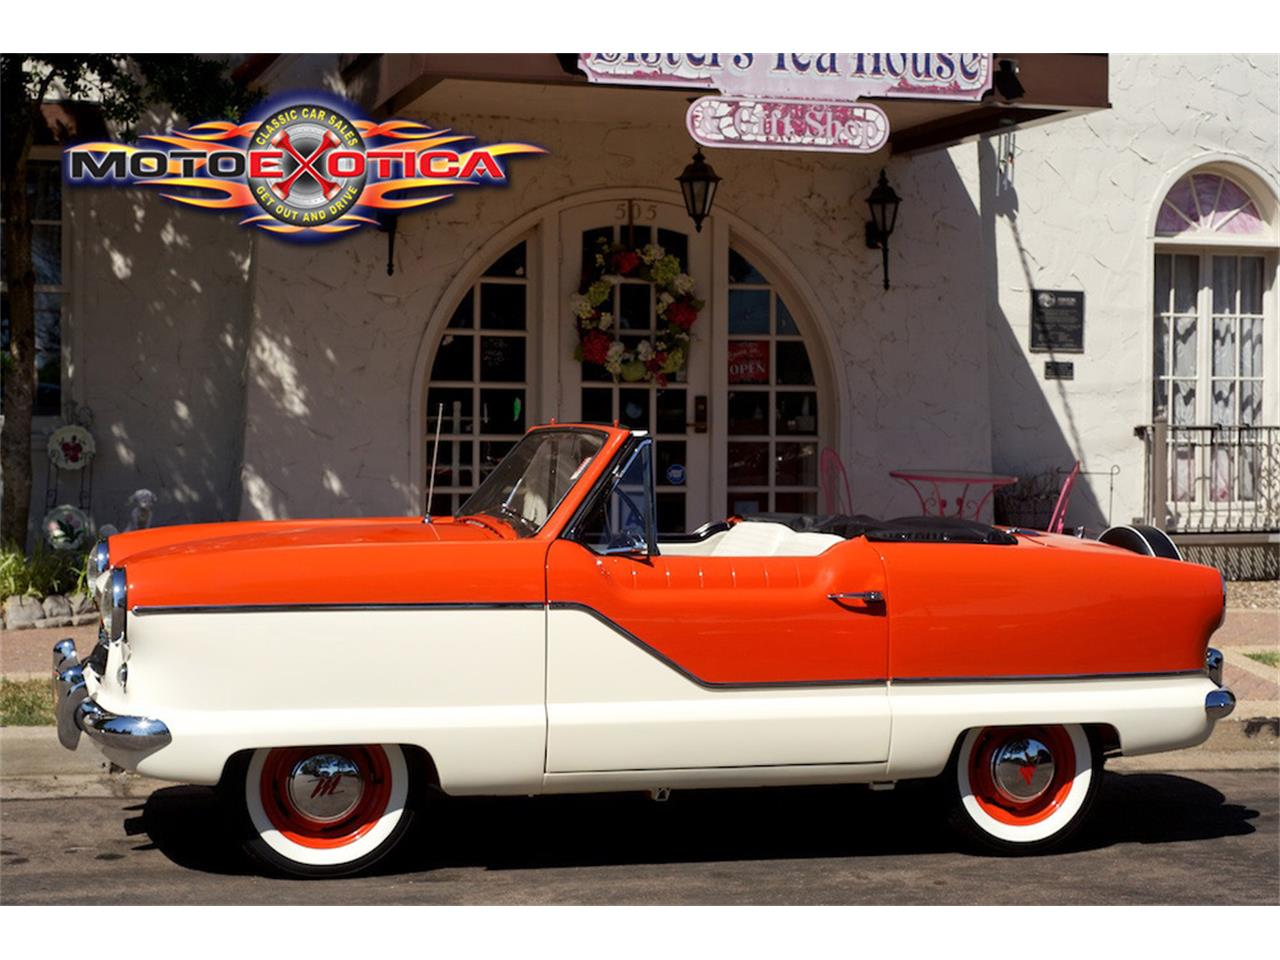 1961 Nash Metropolitan for Sale | ClicCars.com | CC-878678 Nash Metropolitan Wiring Harness on buick lesabre wiring harness, jeep cherokee wiring harness, jeep commander wiring harness, mg midget wiring harness, amc amx wiring harness, ac cobra wiring harness,